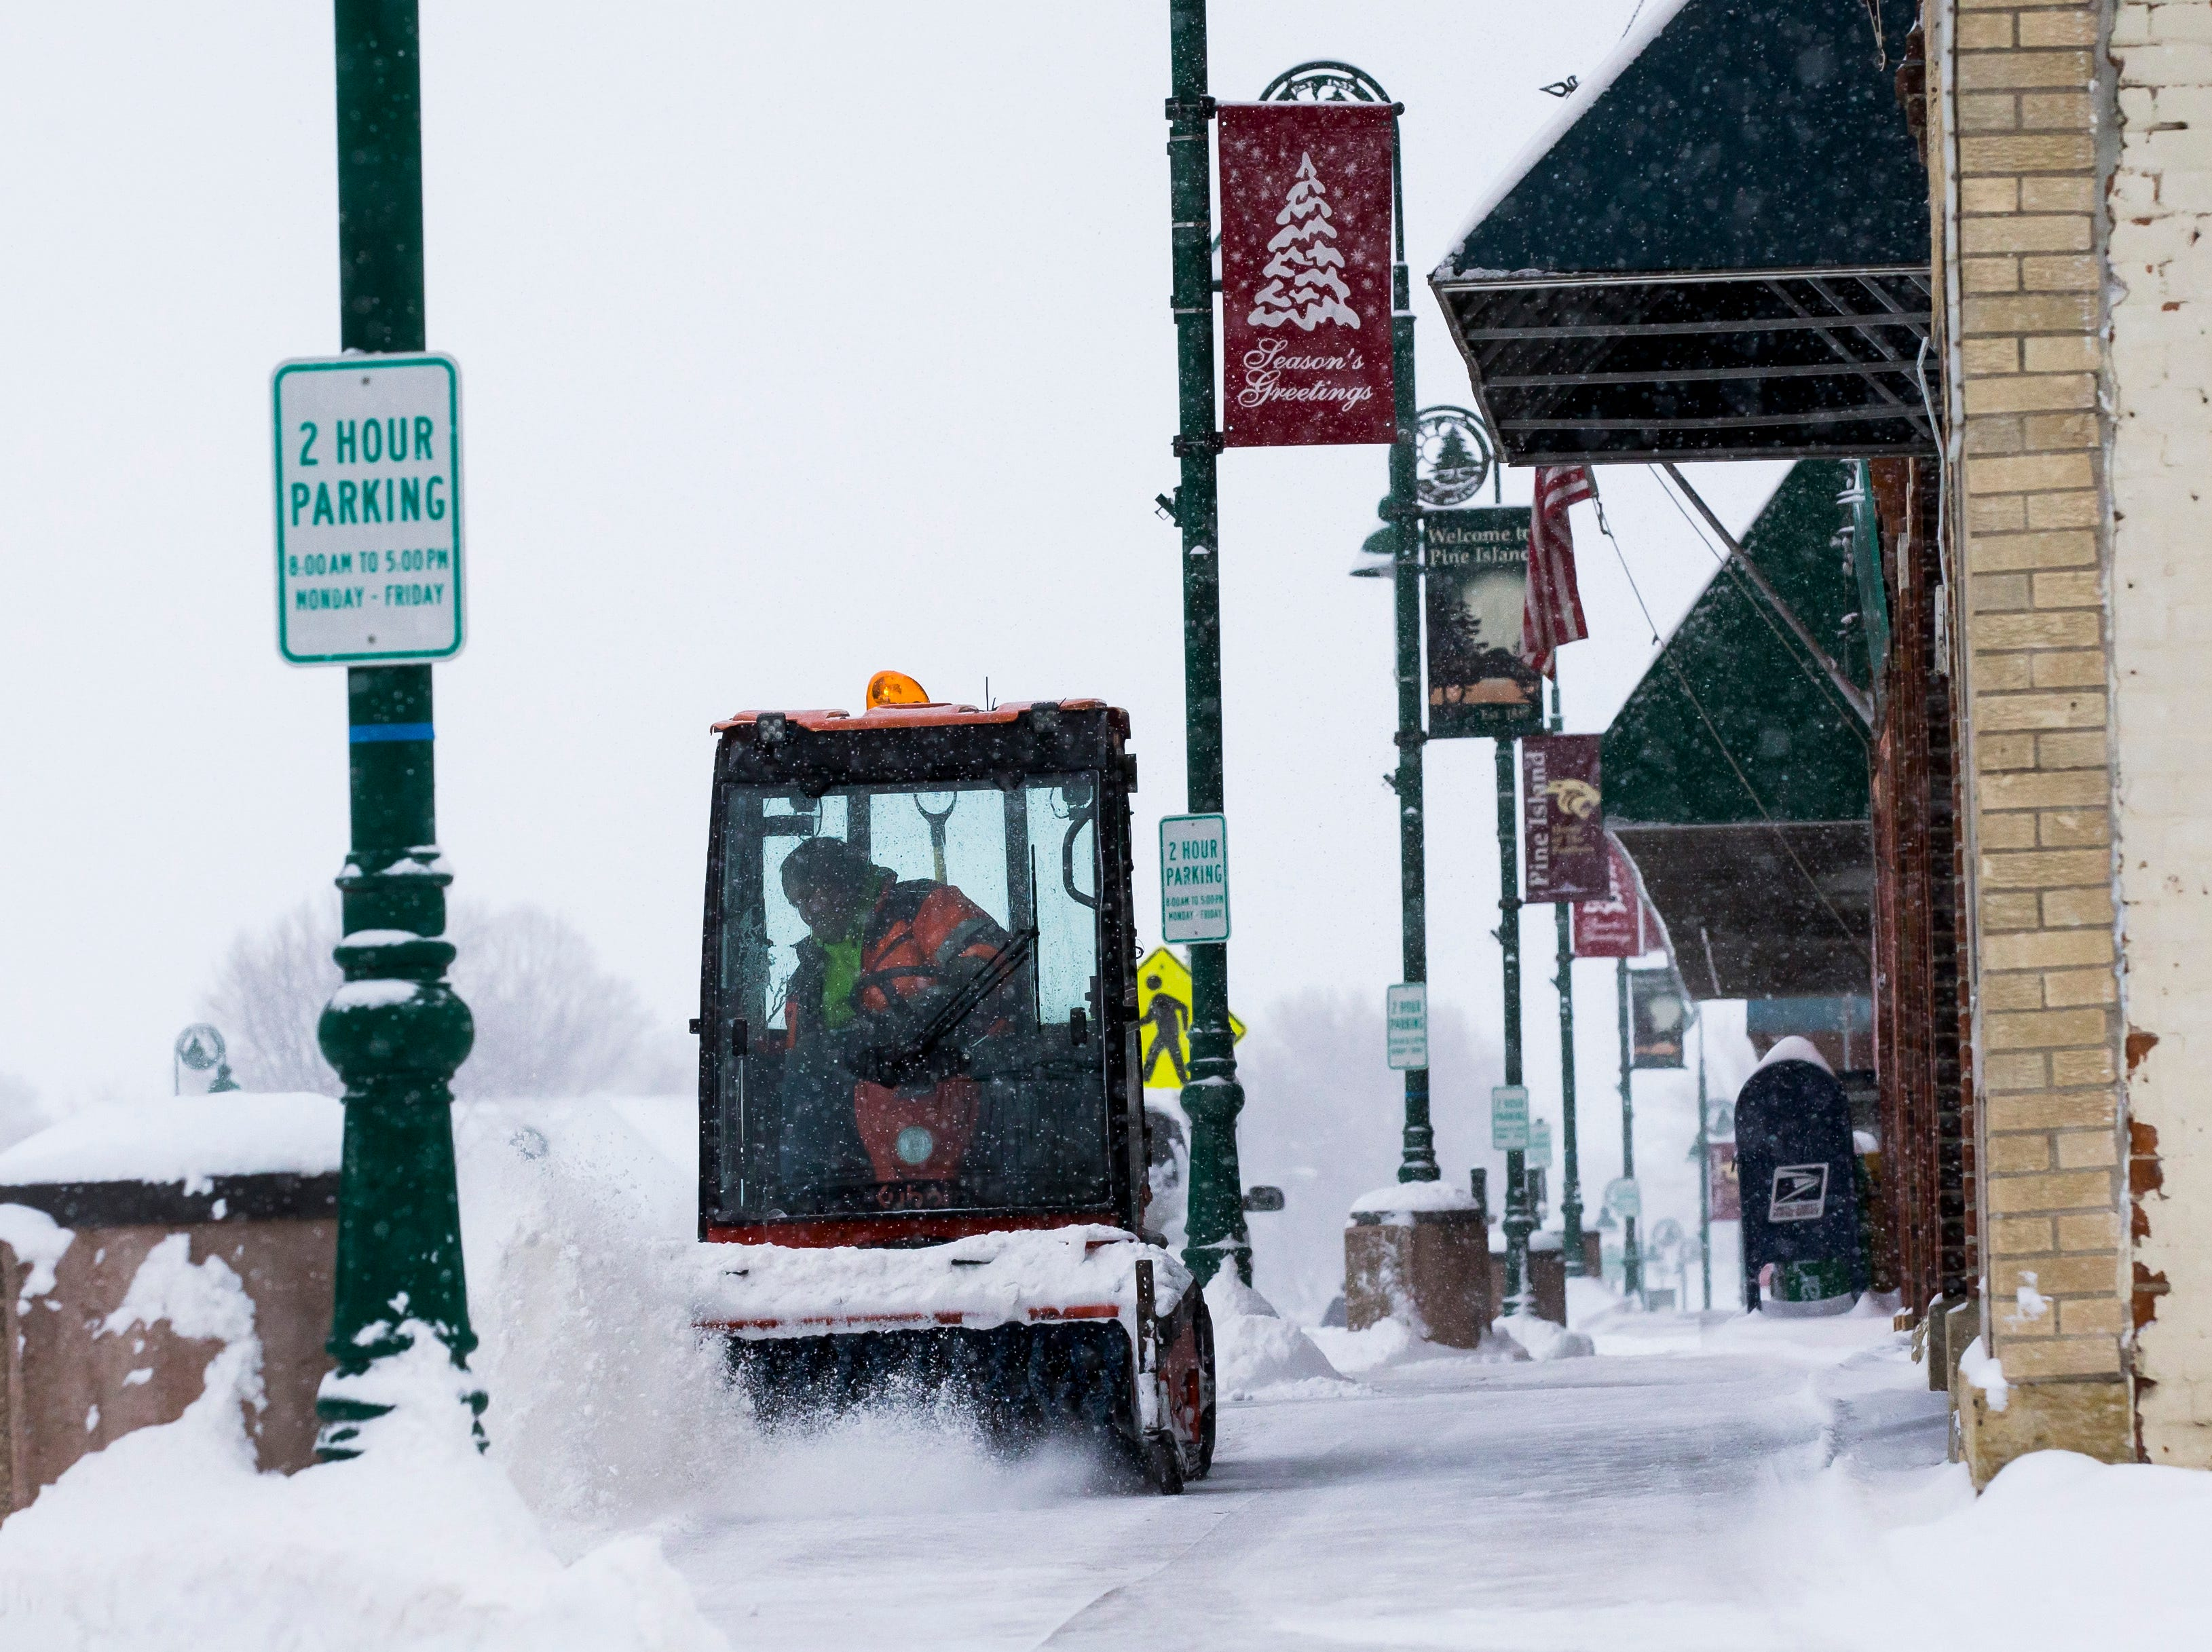 Pine Island Public Works clears snow from a sidewalk in downtown Pine Island, Minn. on Feb. 7, 2019.